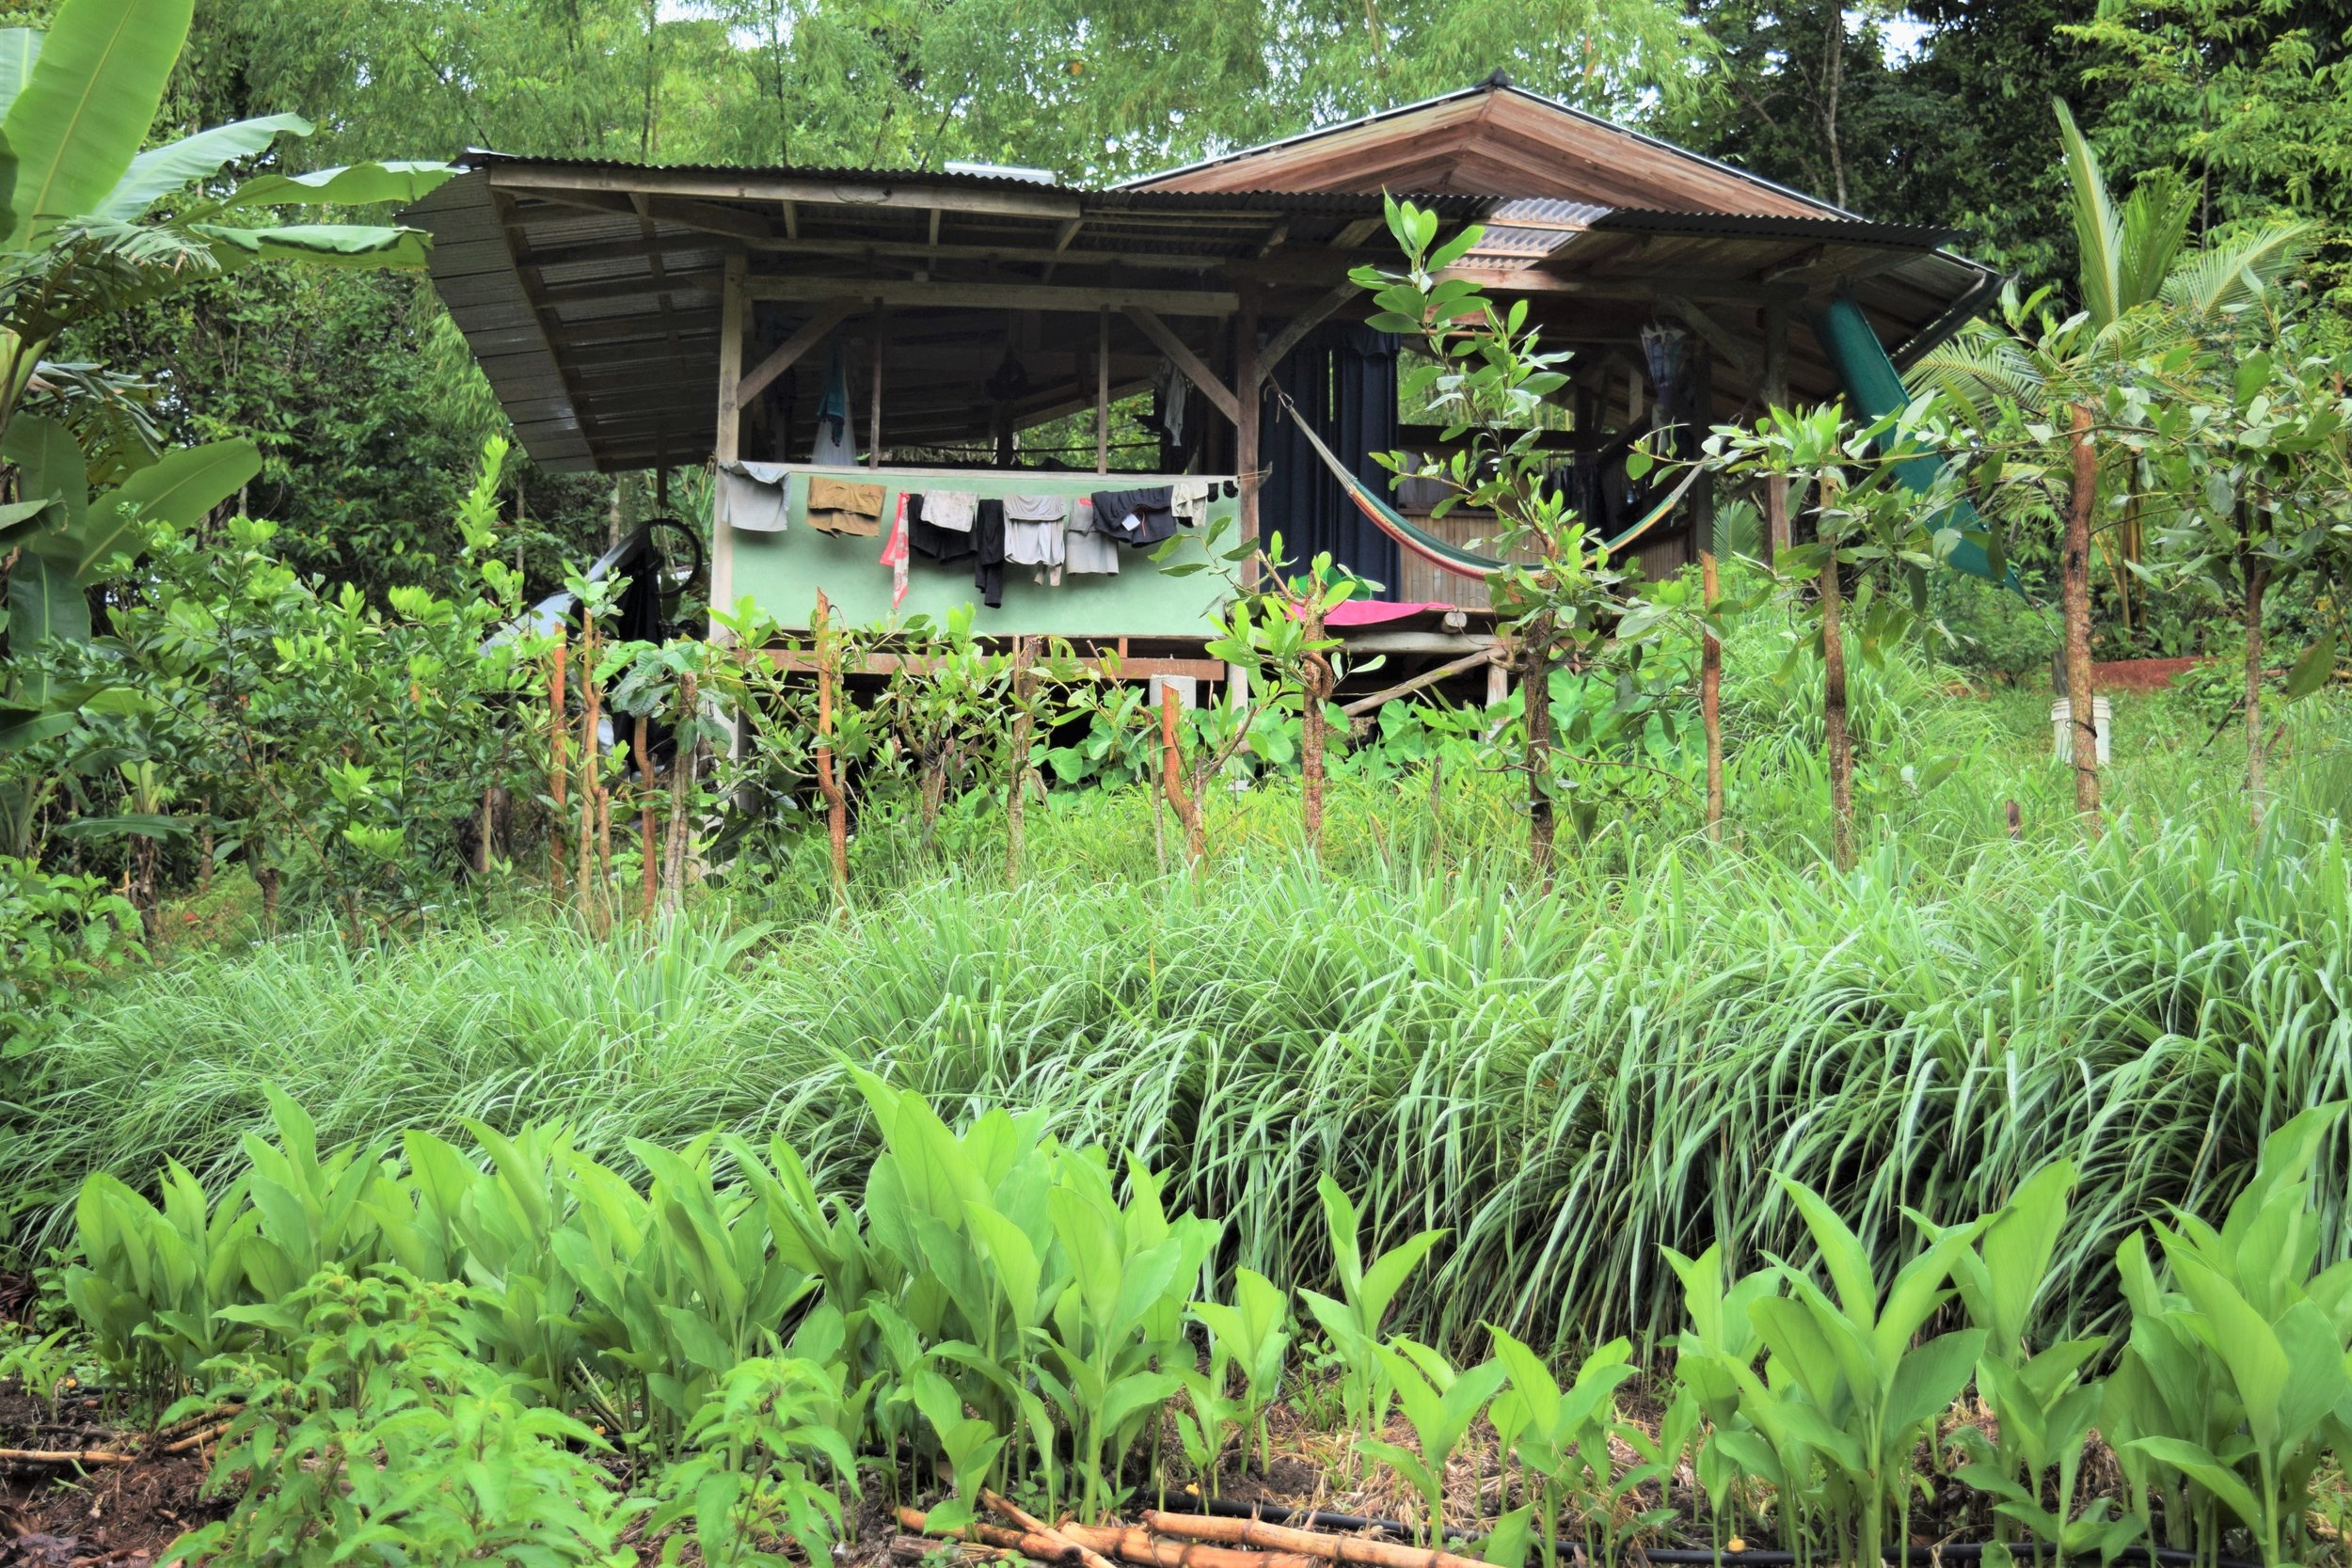 Our house at Rancho Mastatal. My partner Scott Gallant and I designed the yard to grow food, medicine, and market crops. (Photo Credit Laura Killingbeck; Mastatal, Costa Rica)